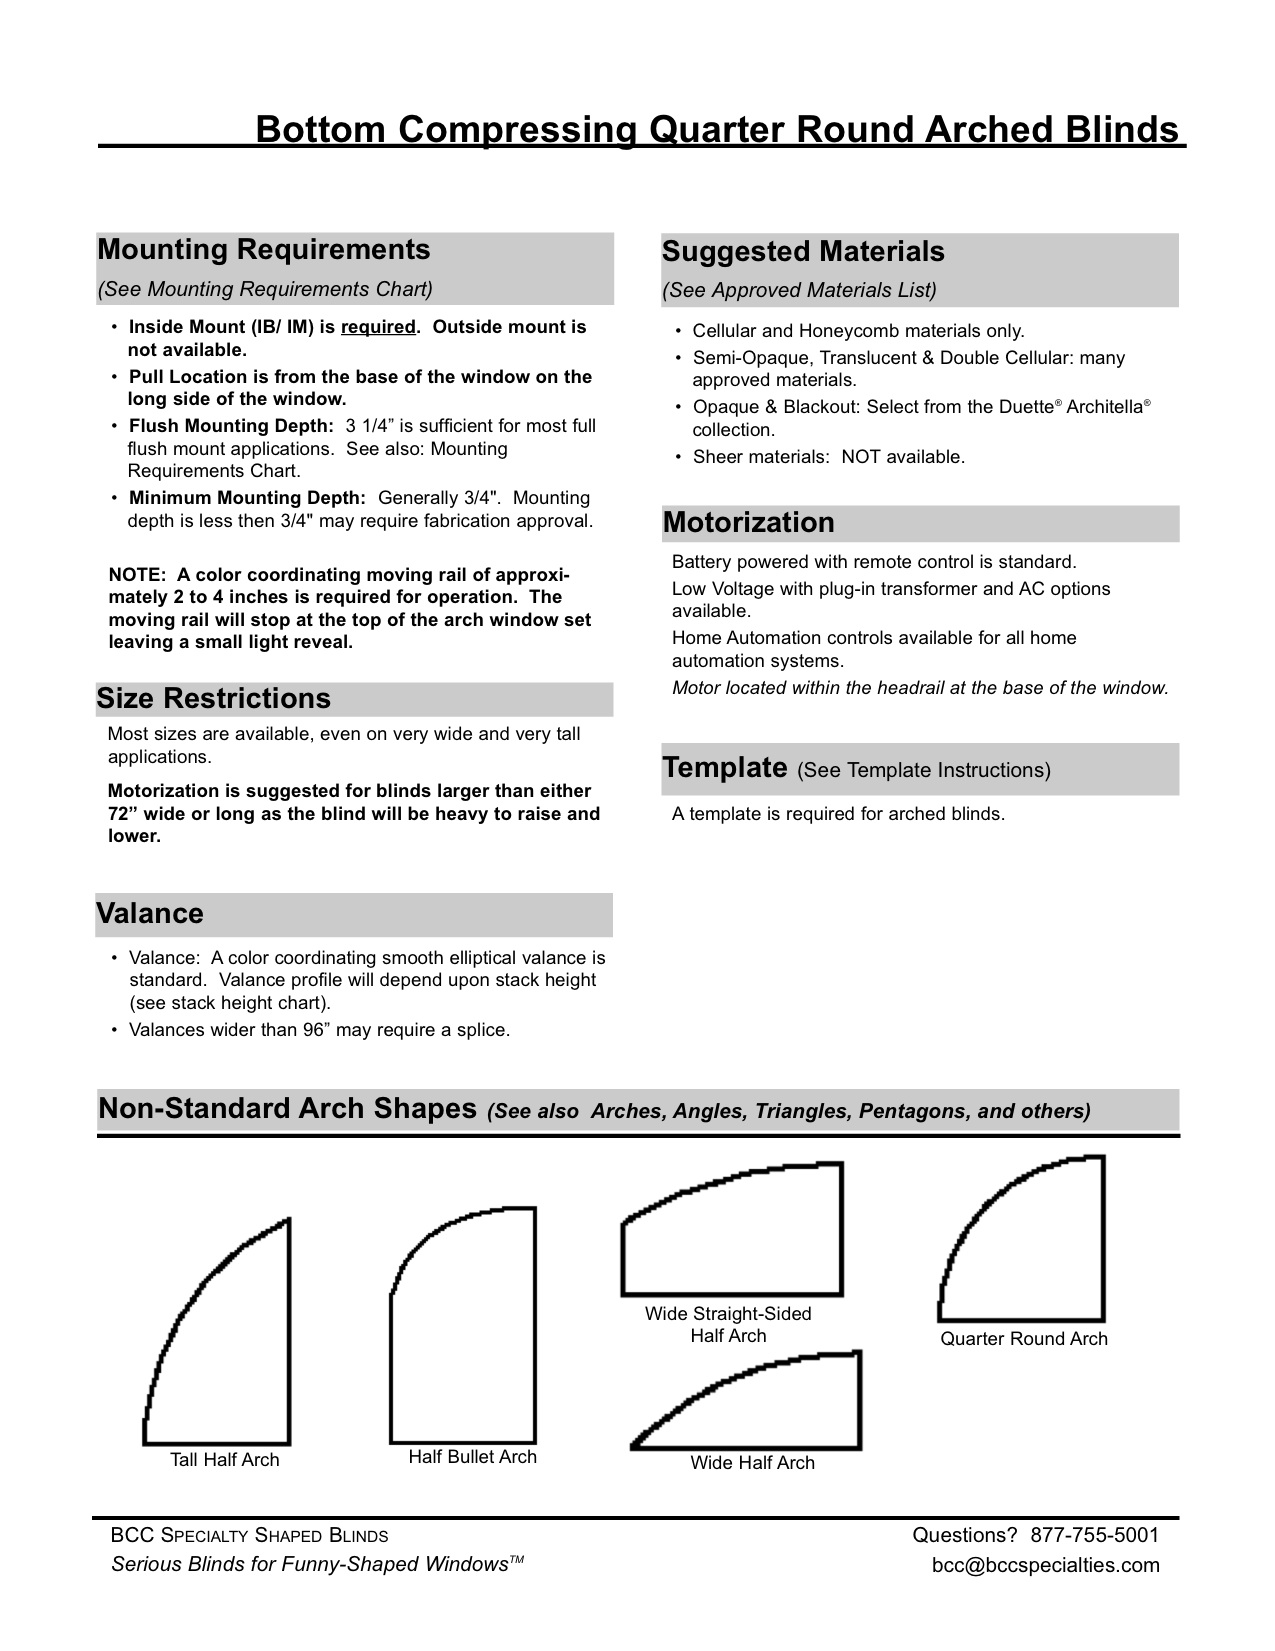 Quarter Round Window Blind Technical Specification Sheet